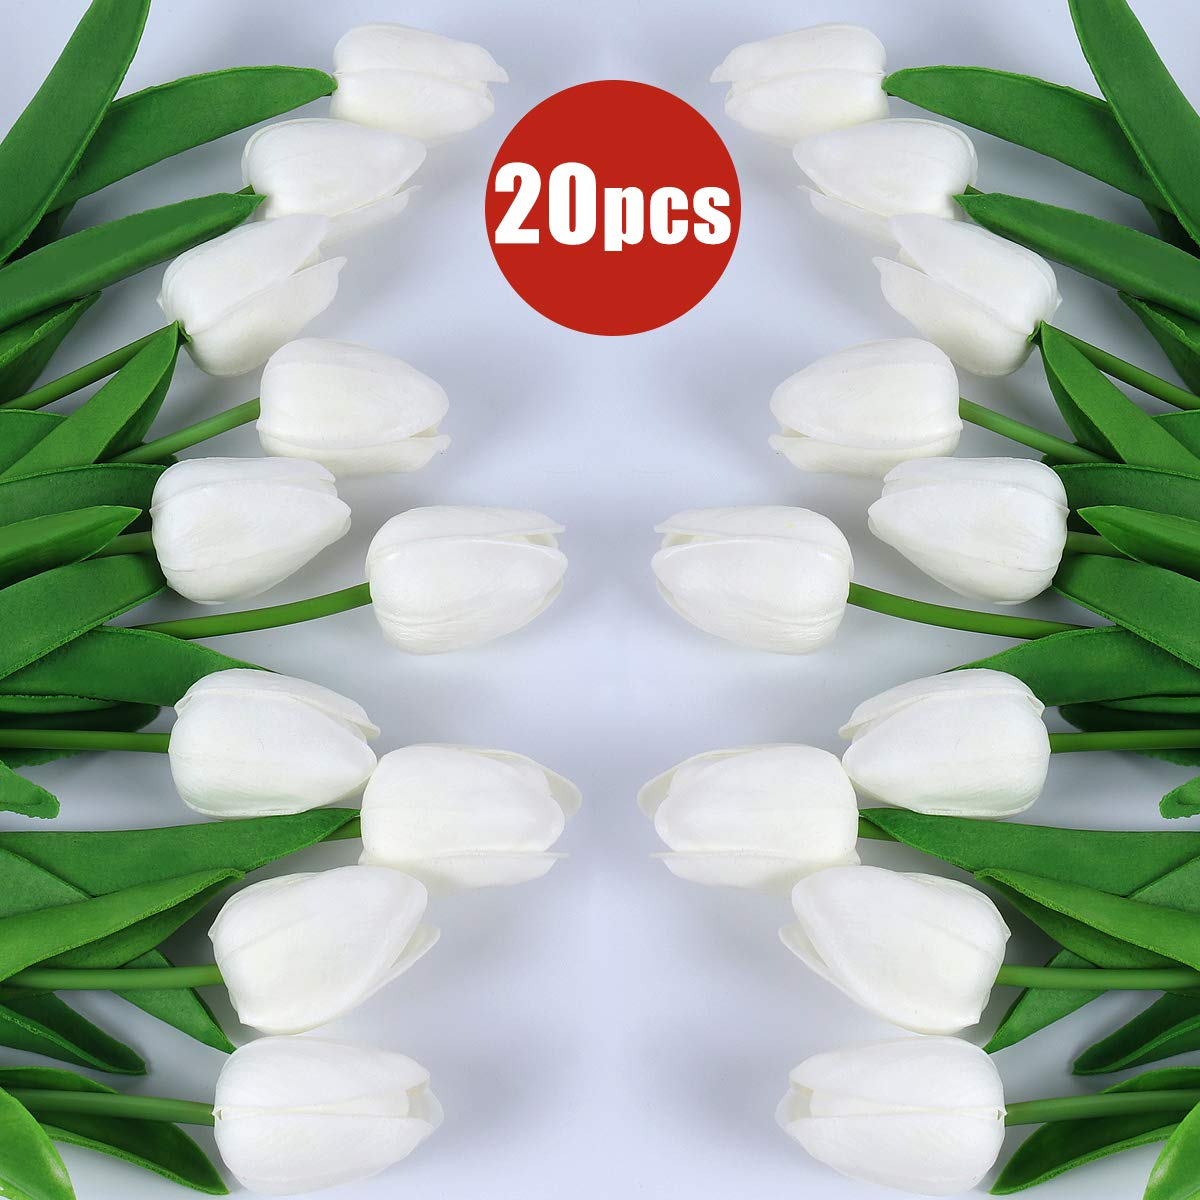 """RECUTMS 20 Heads Artificial White Tulips Flowers Real-Touch Fake Tulips for Mothers Day Party Home Centerpiece Decoration 13"""" Tall (White)"""